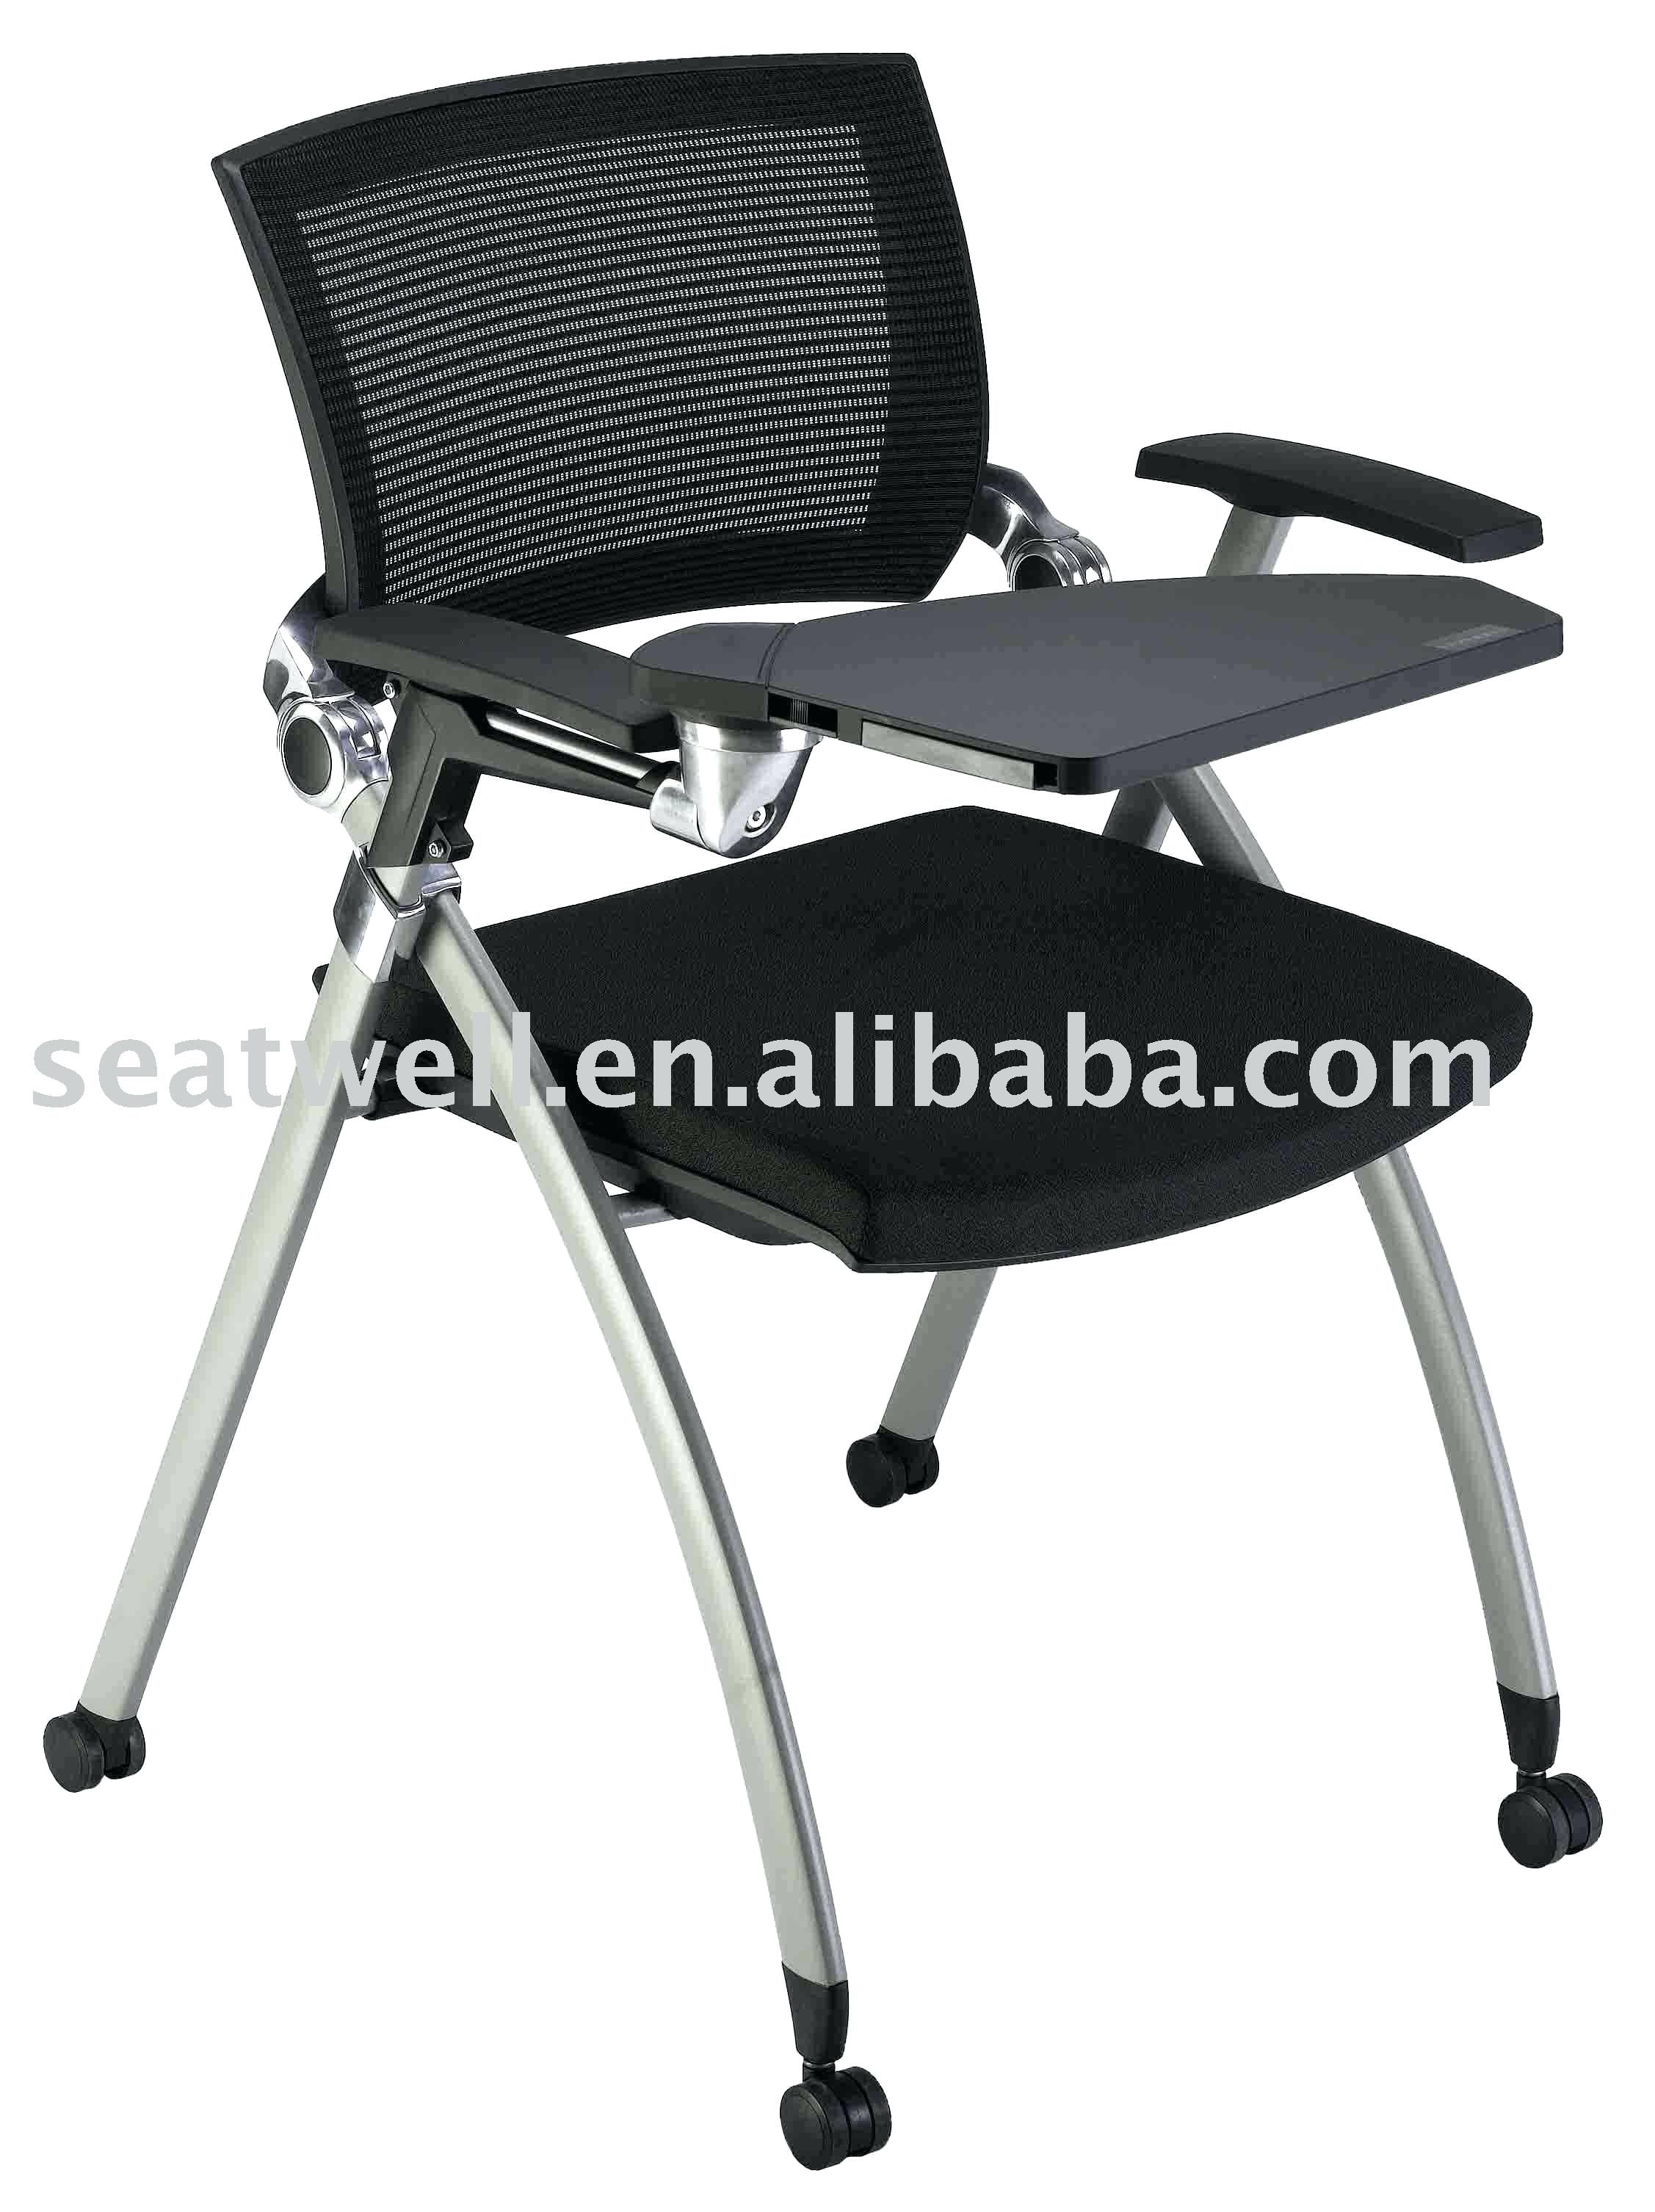 casters chair profile inspirational terminology caster fresh low chairs of